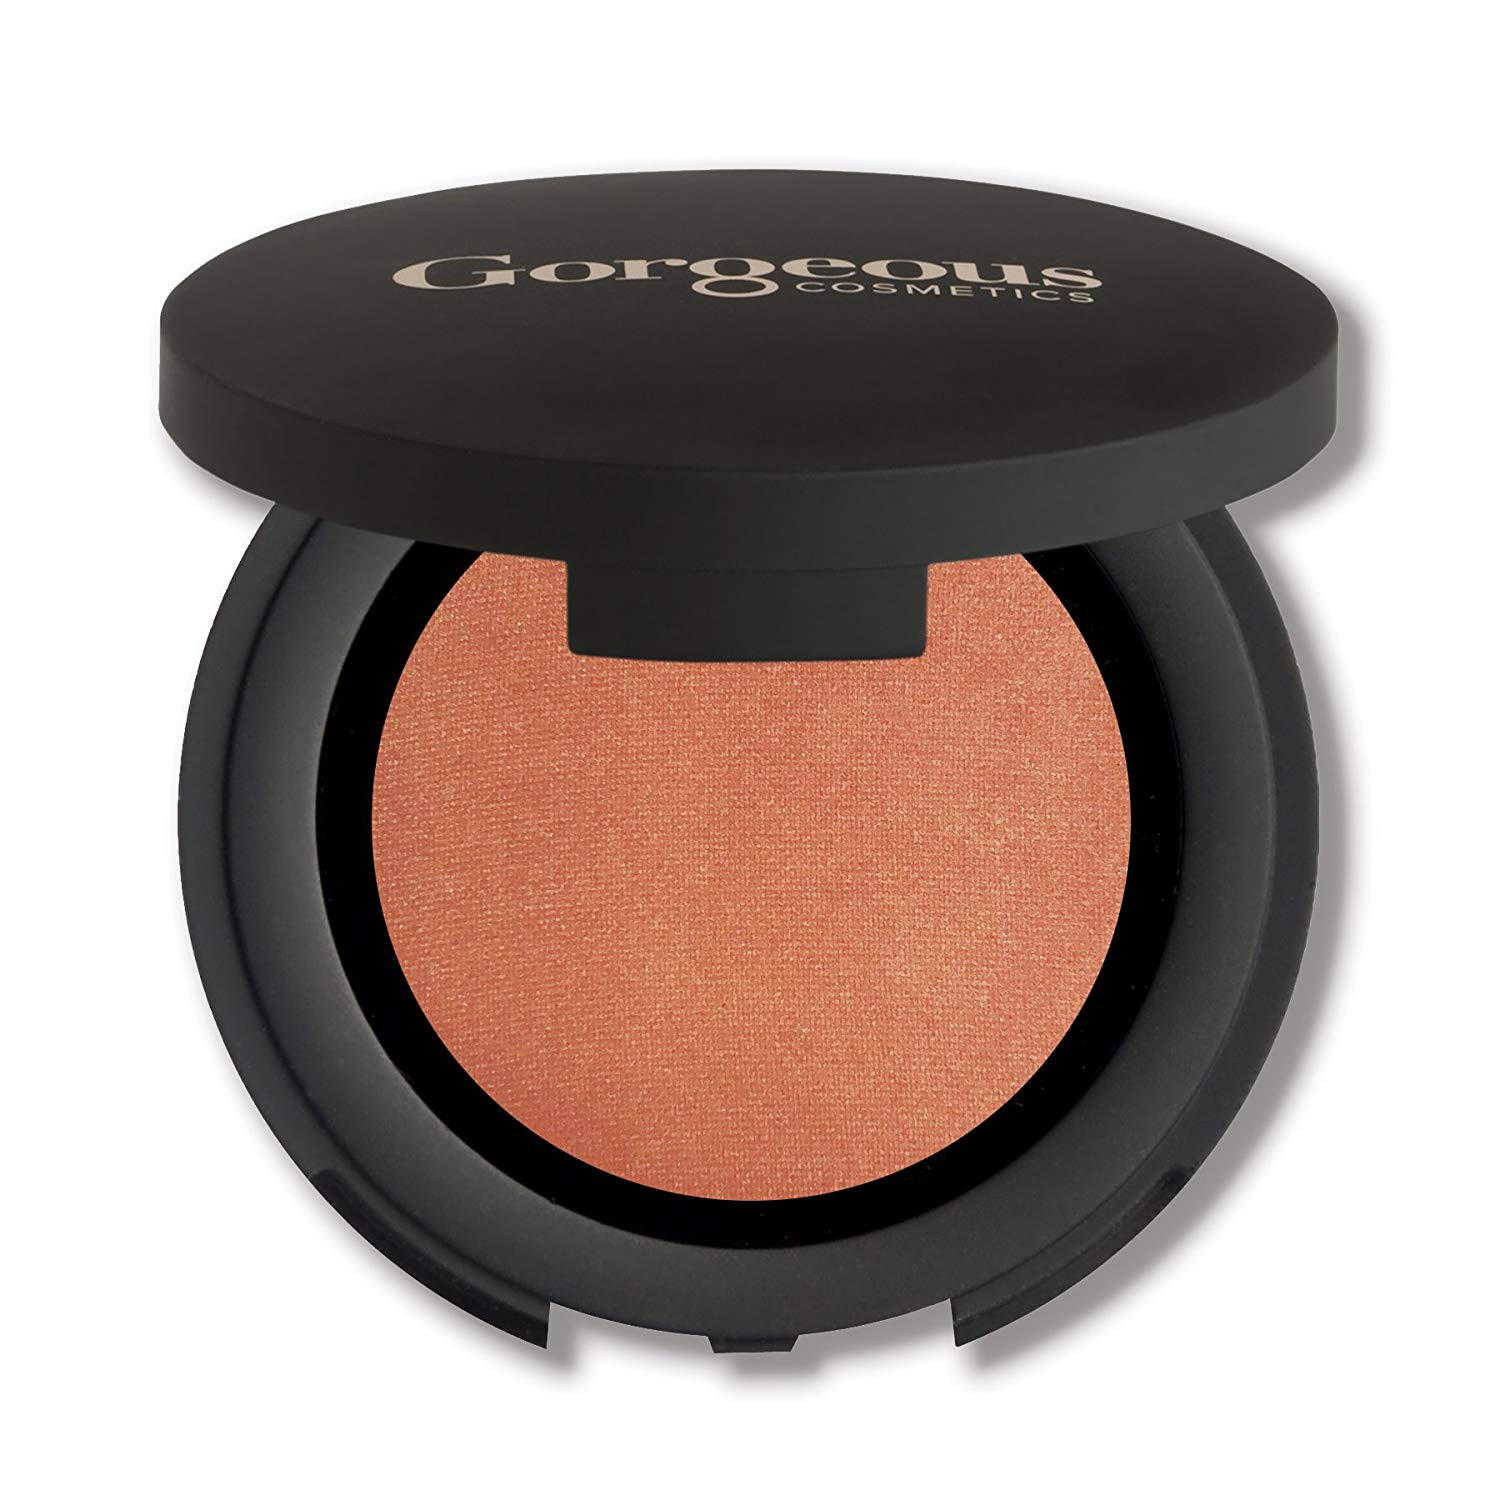 Gorgeous Cosmetics Colour Pro Eyeshadow Goldfish